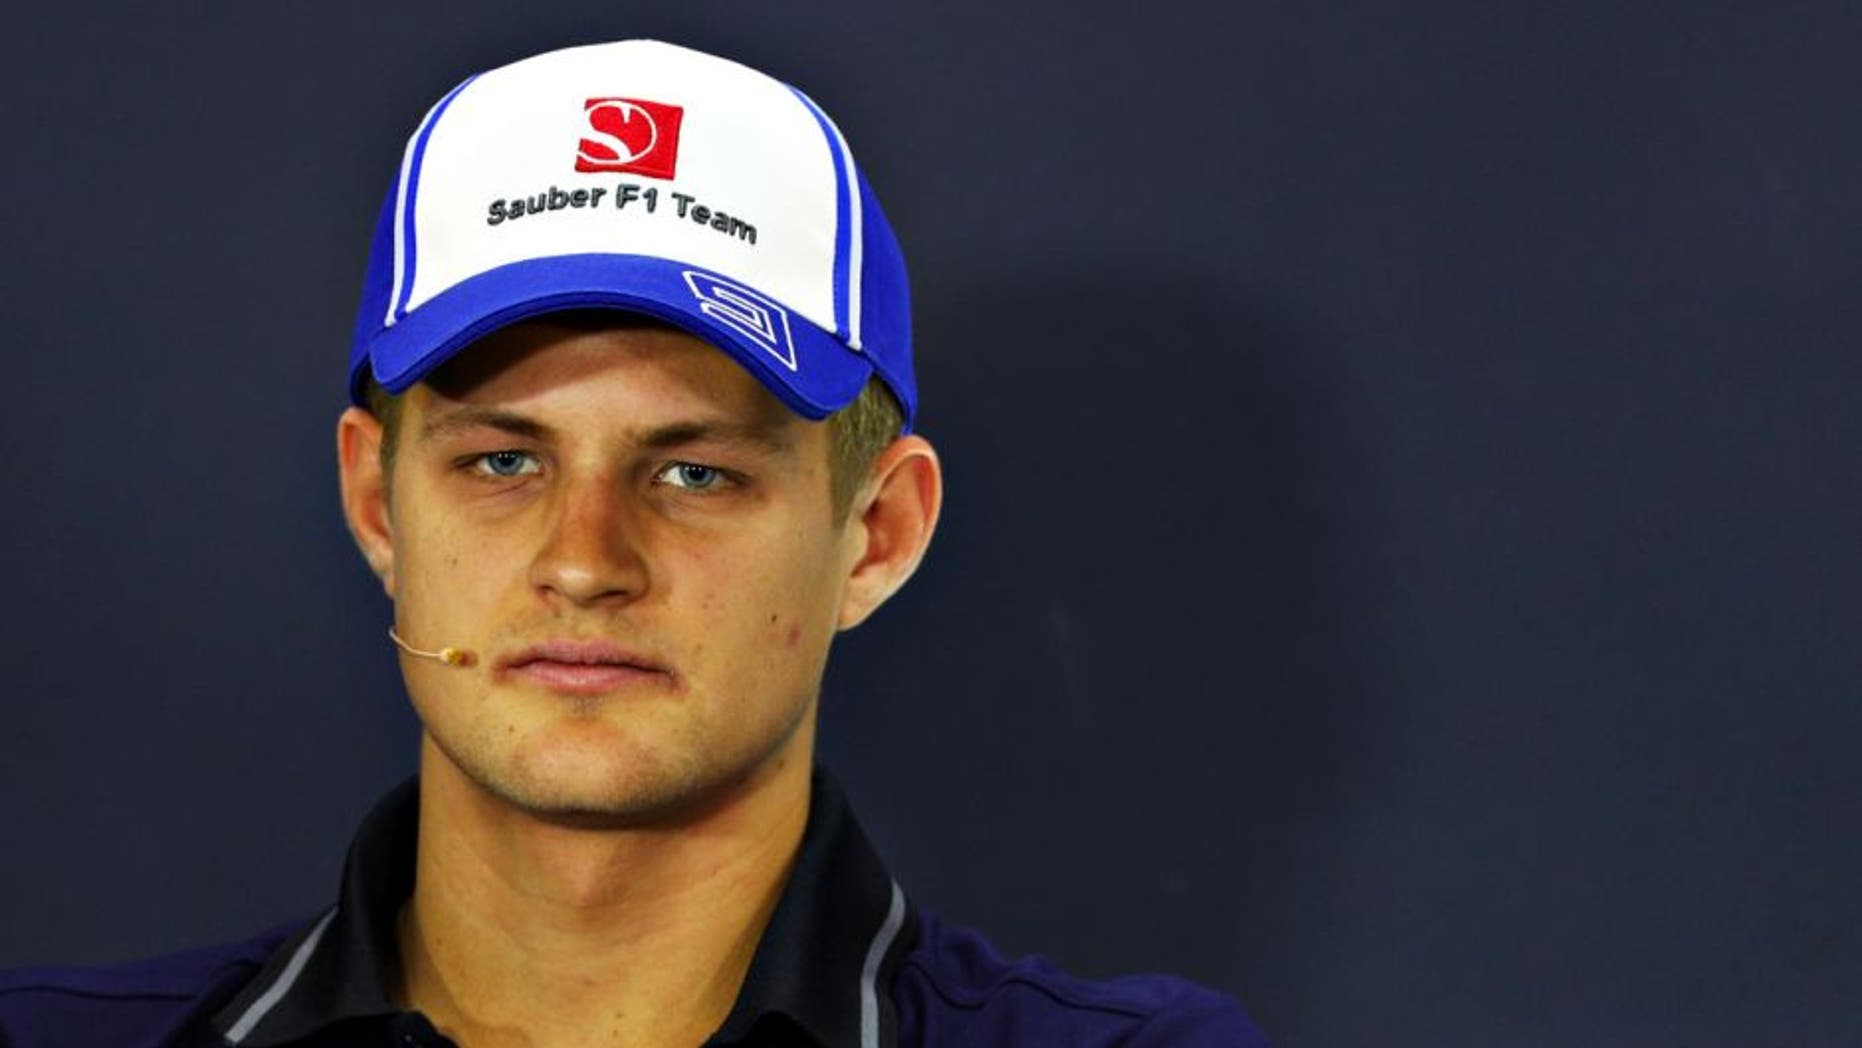 SHANGHAI, CHINA - APRIL 14: Marcus Ericsson of Sweden and Sauber F1 in the Drivers Press Conference during previews to the Formula One Grand Prix of China at Shanghai International Circuit on April 14, 2016 in Shanghai, China. (Photo by Clive Mason/Getty Images)